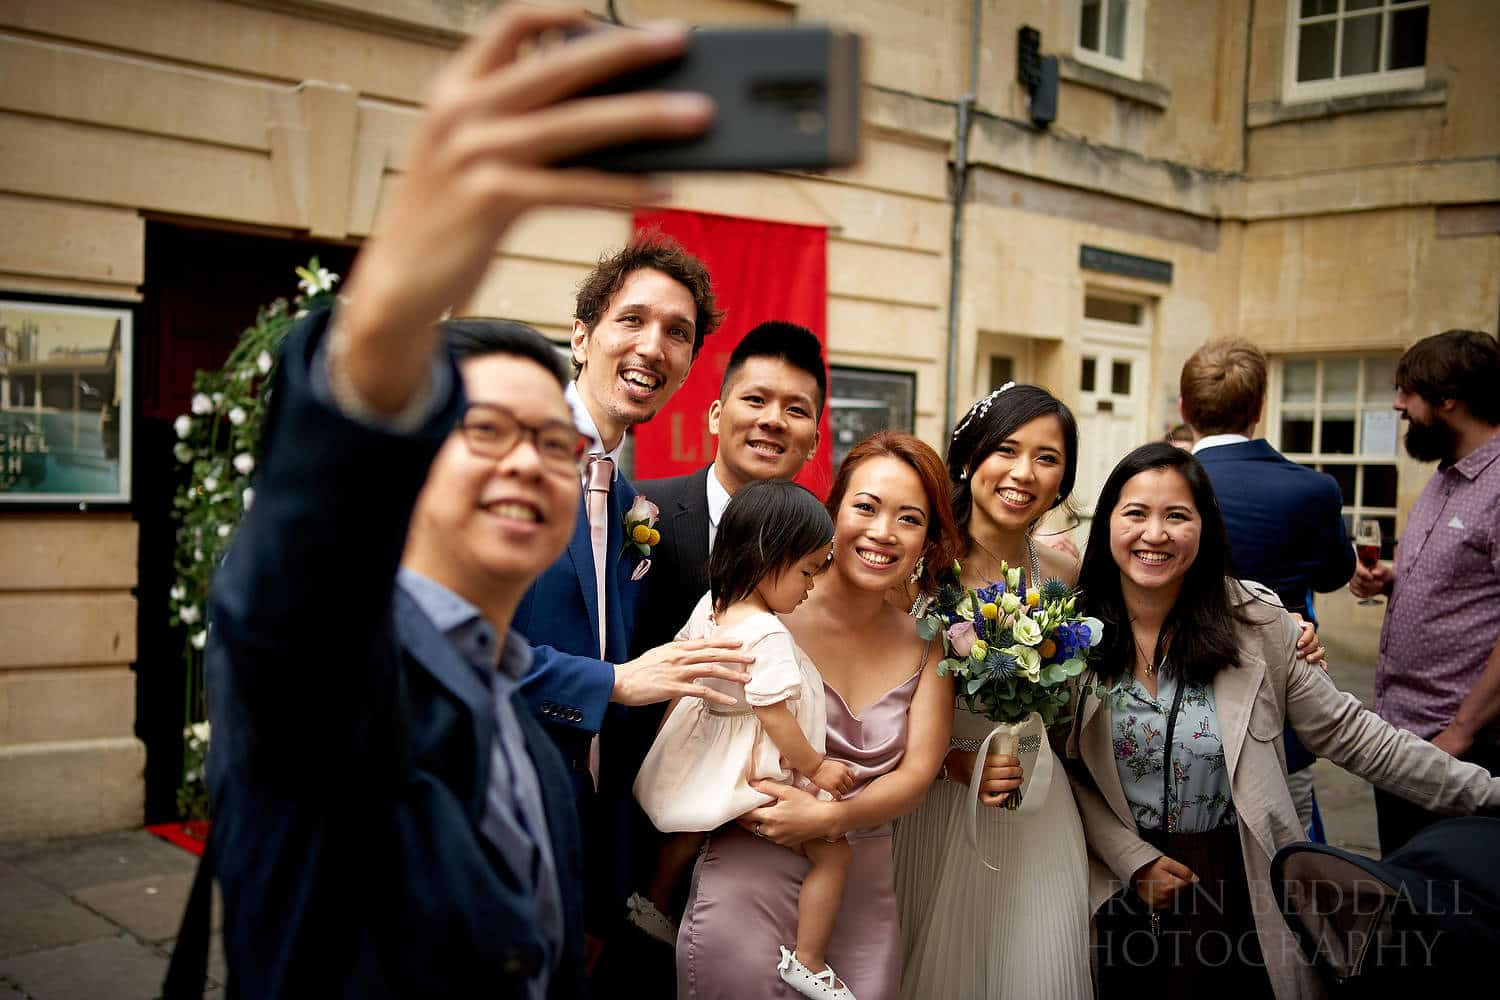 Selfie with the bride and groom